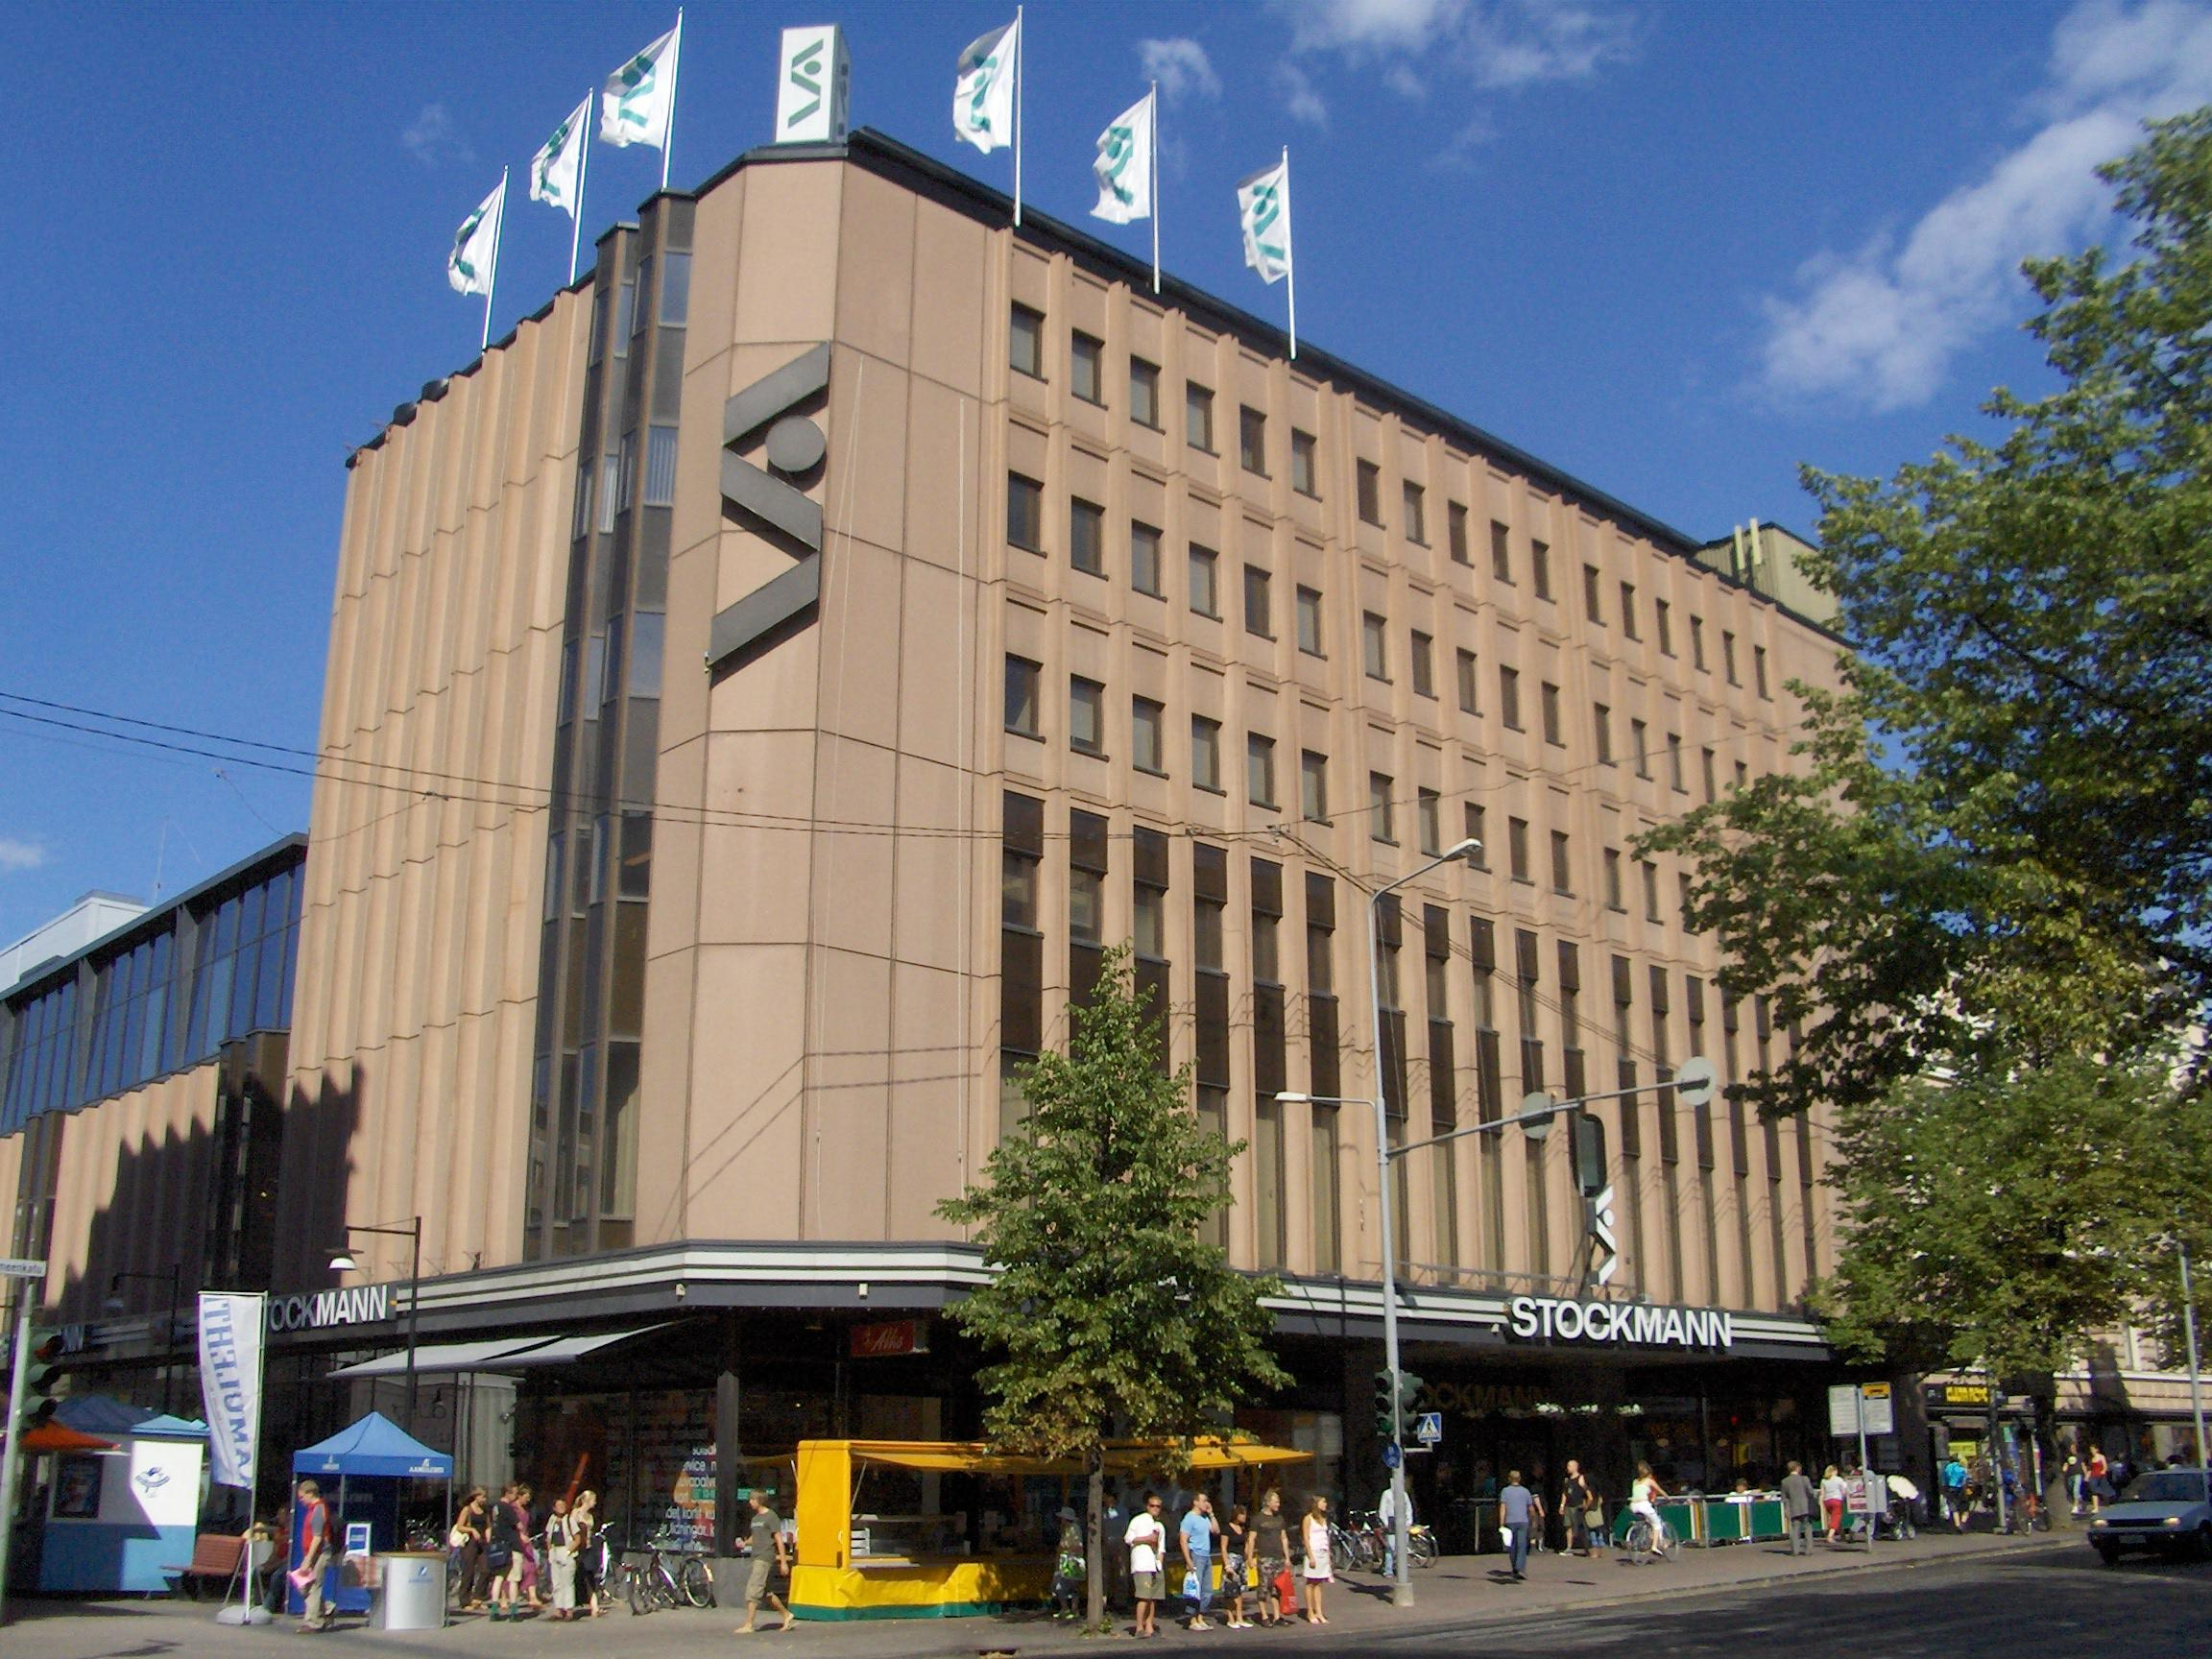 Stockmann Tampere Laukut : File stockmann department store g wikimedia commons